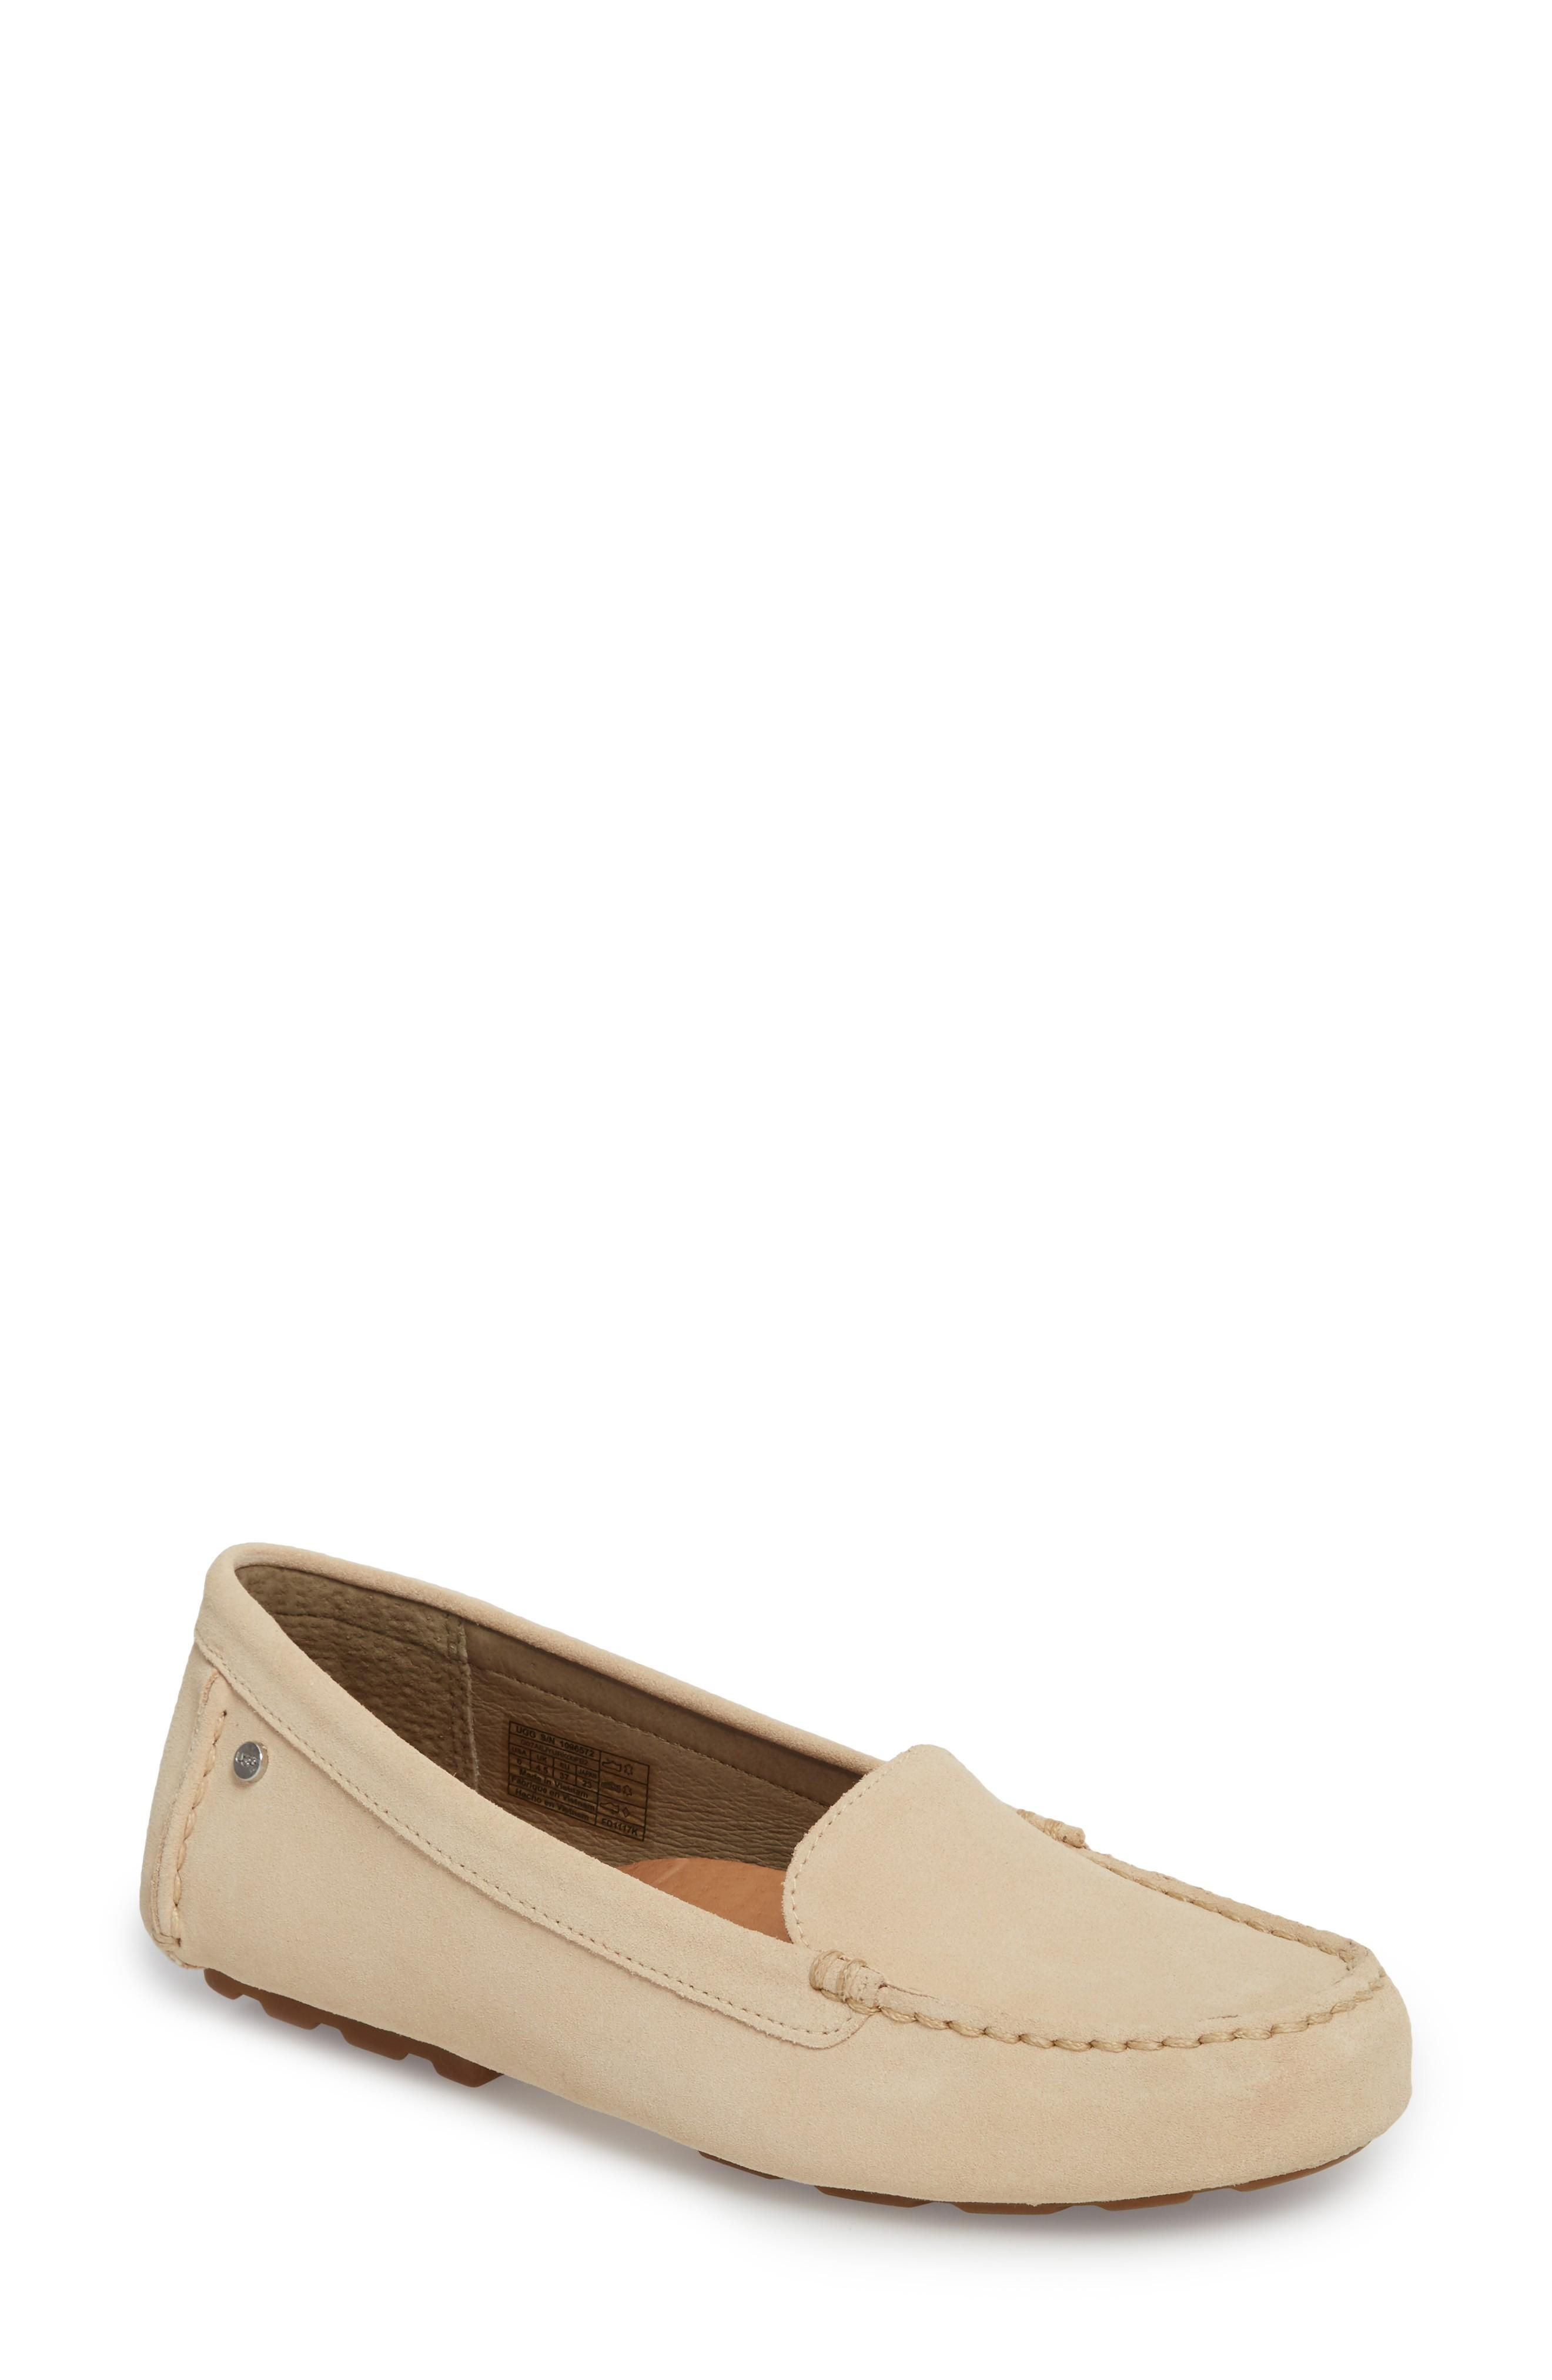 cbdf0c24241 Ugg Australia Womens Milana Closed Toe Loafers In Cream Suede